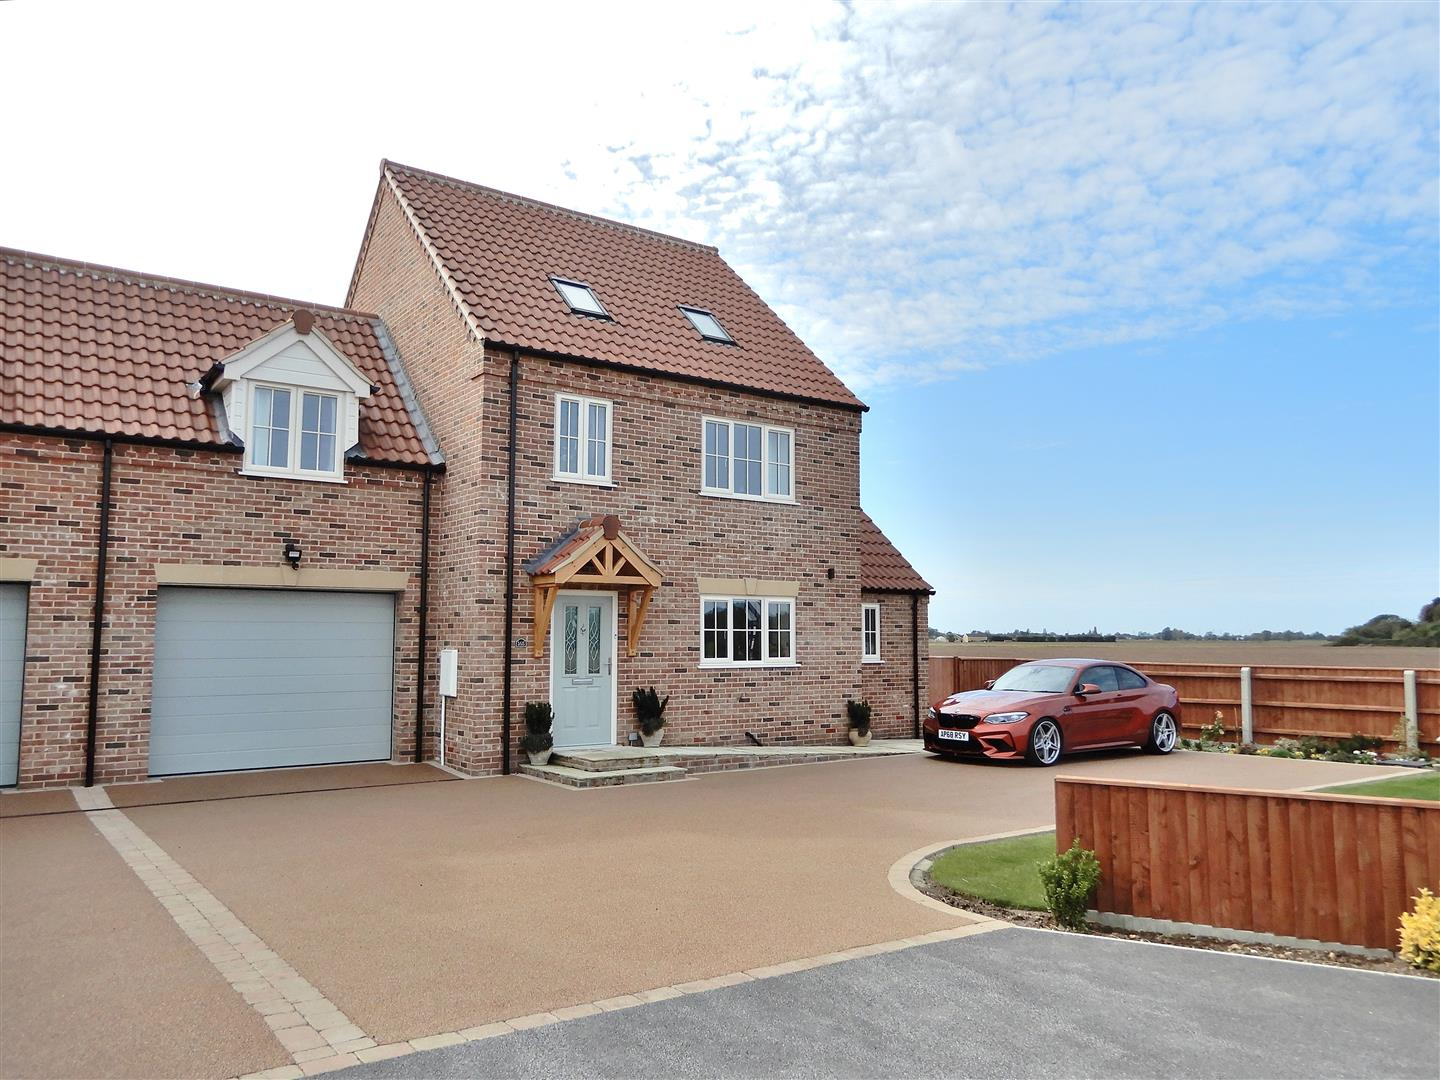 4 bed semi-detached house for sale in Sutton Road, King's Lynn, PE34